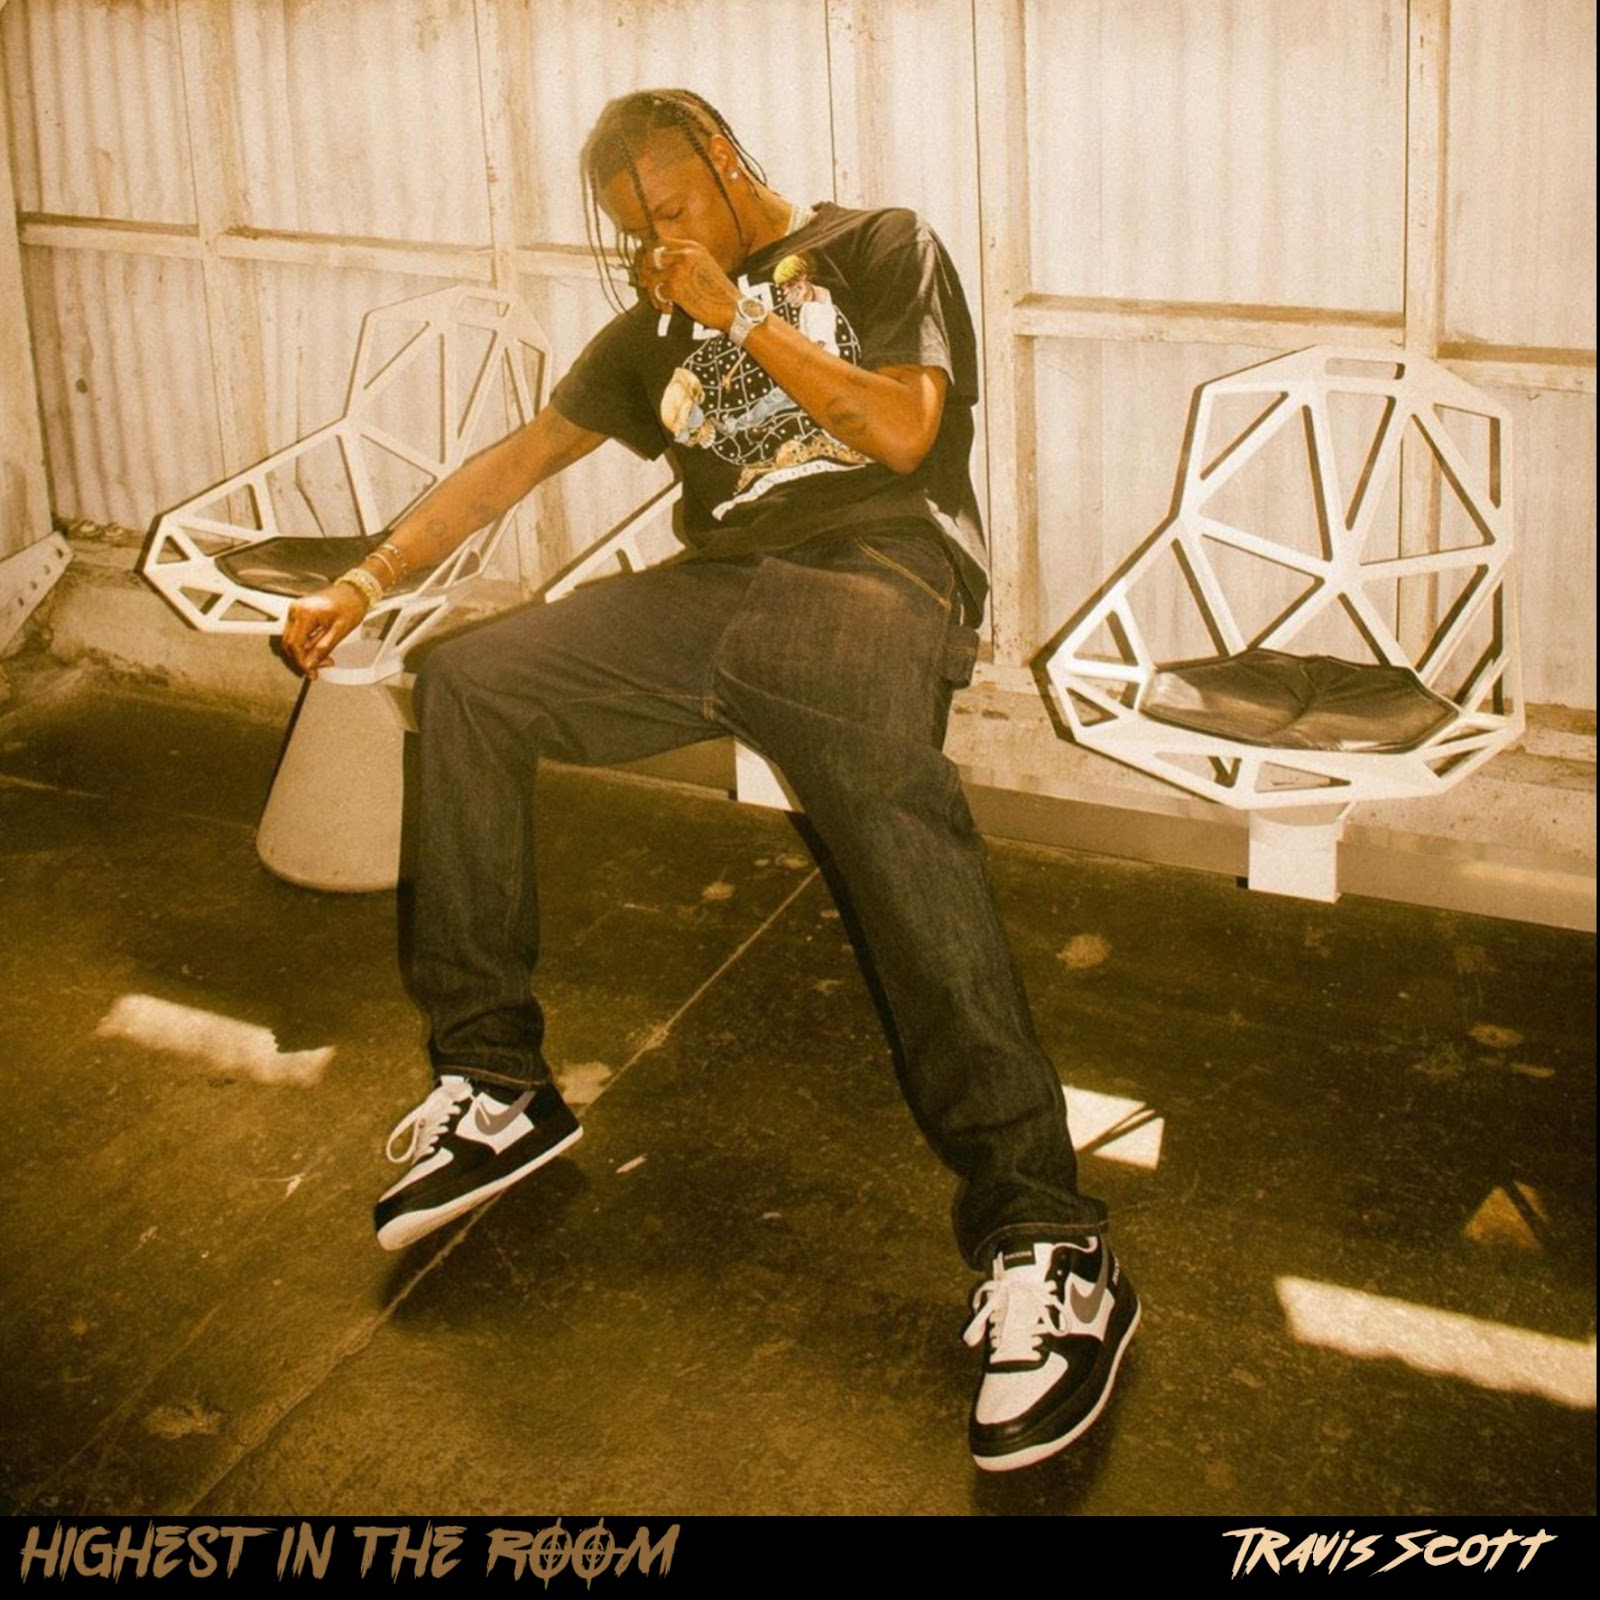 Travis Scott - Highest In The Room Audio Stream and Mp3 Download